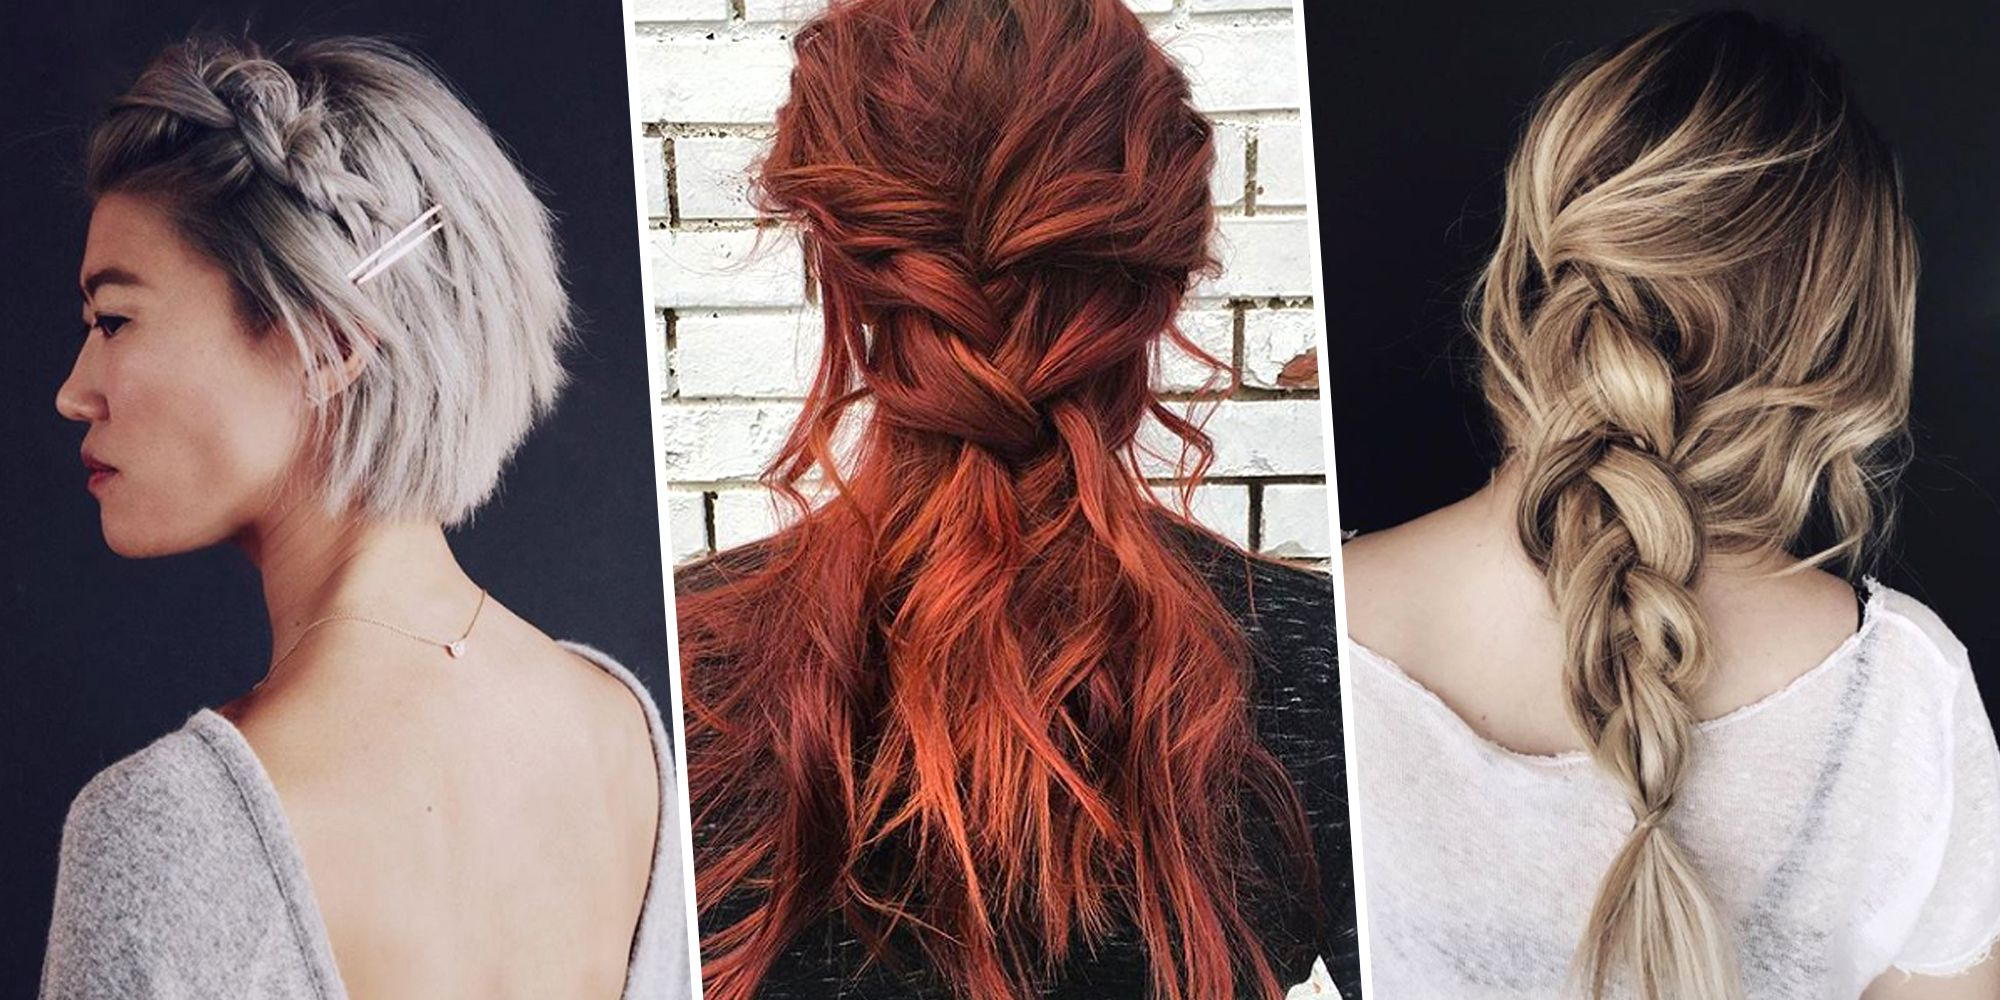 8 Messy, Easy Braid Ideas To Copy – Best Braided Hairstyles Regarding Fashionable Messy Crown Braided Hairstyles (View 6 of 20)